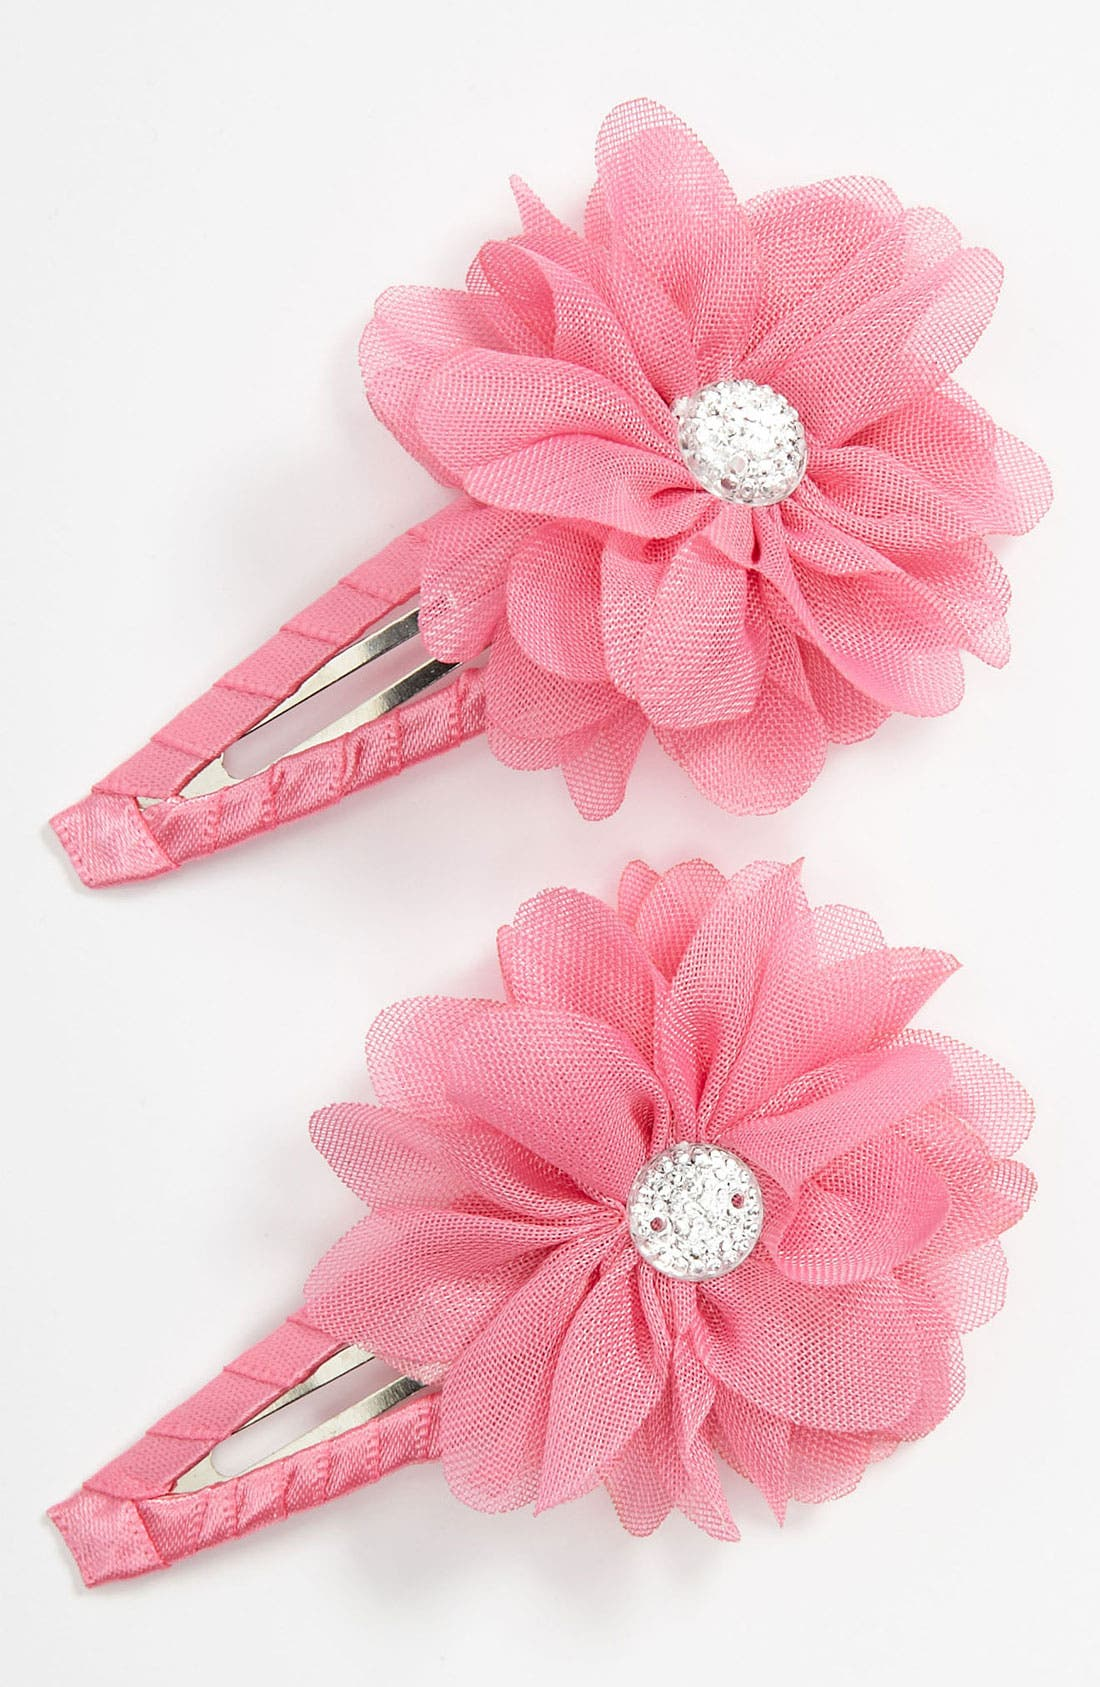 Alternate Image 1 Selected - Capelli of New York Flower Hair Clip (Set of 2) (Girls)